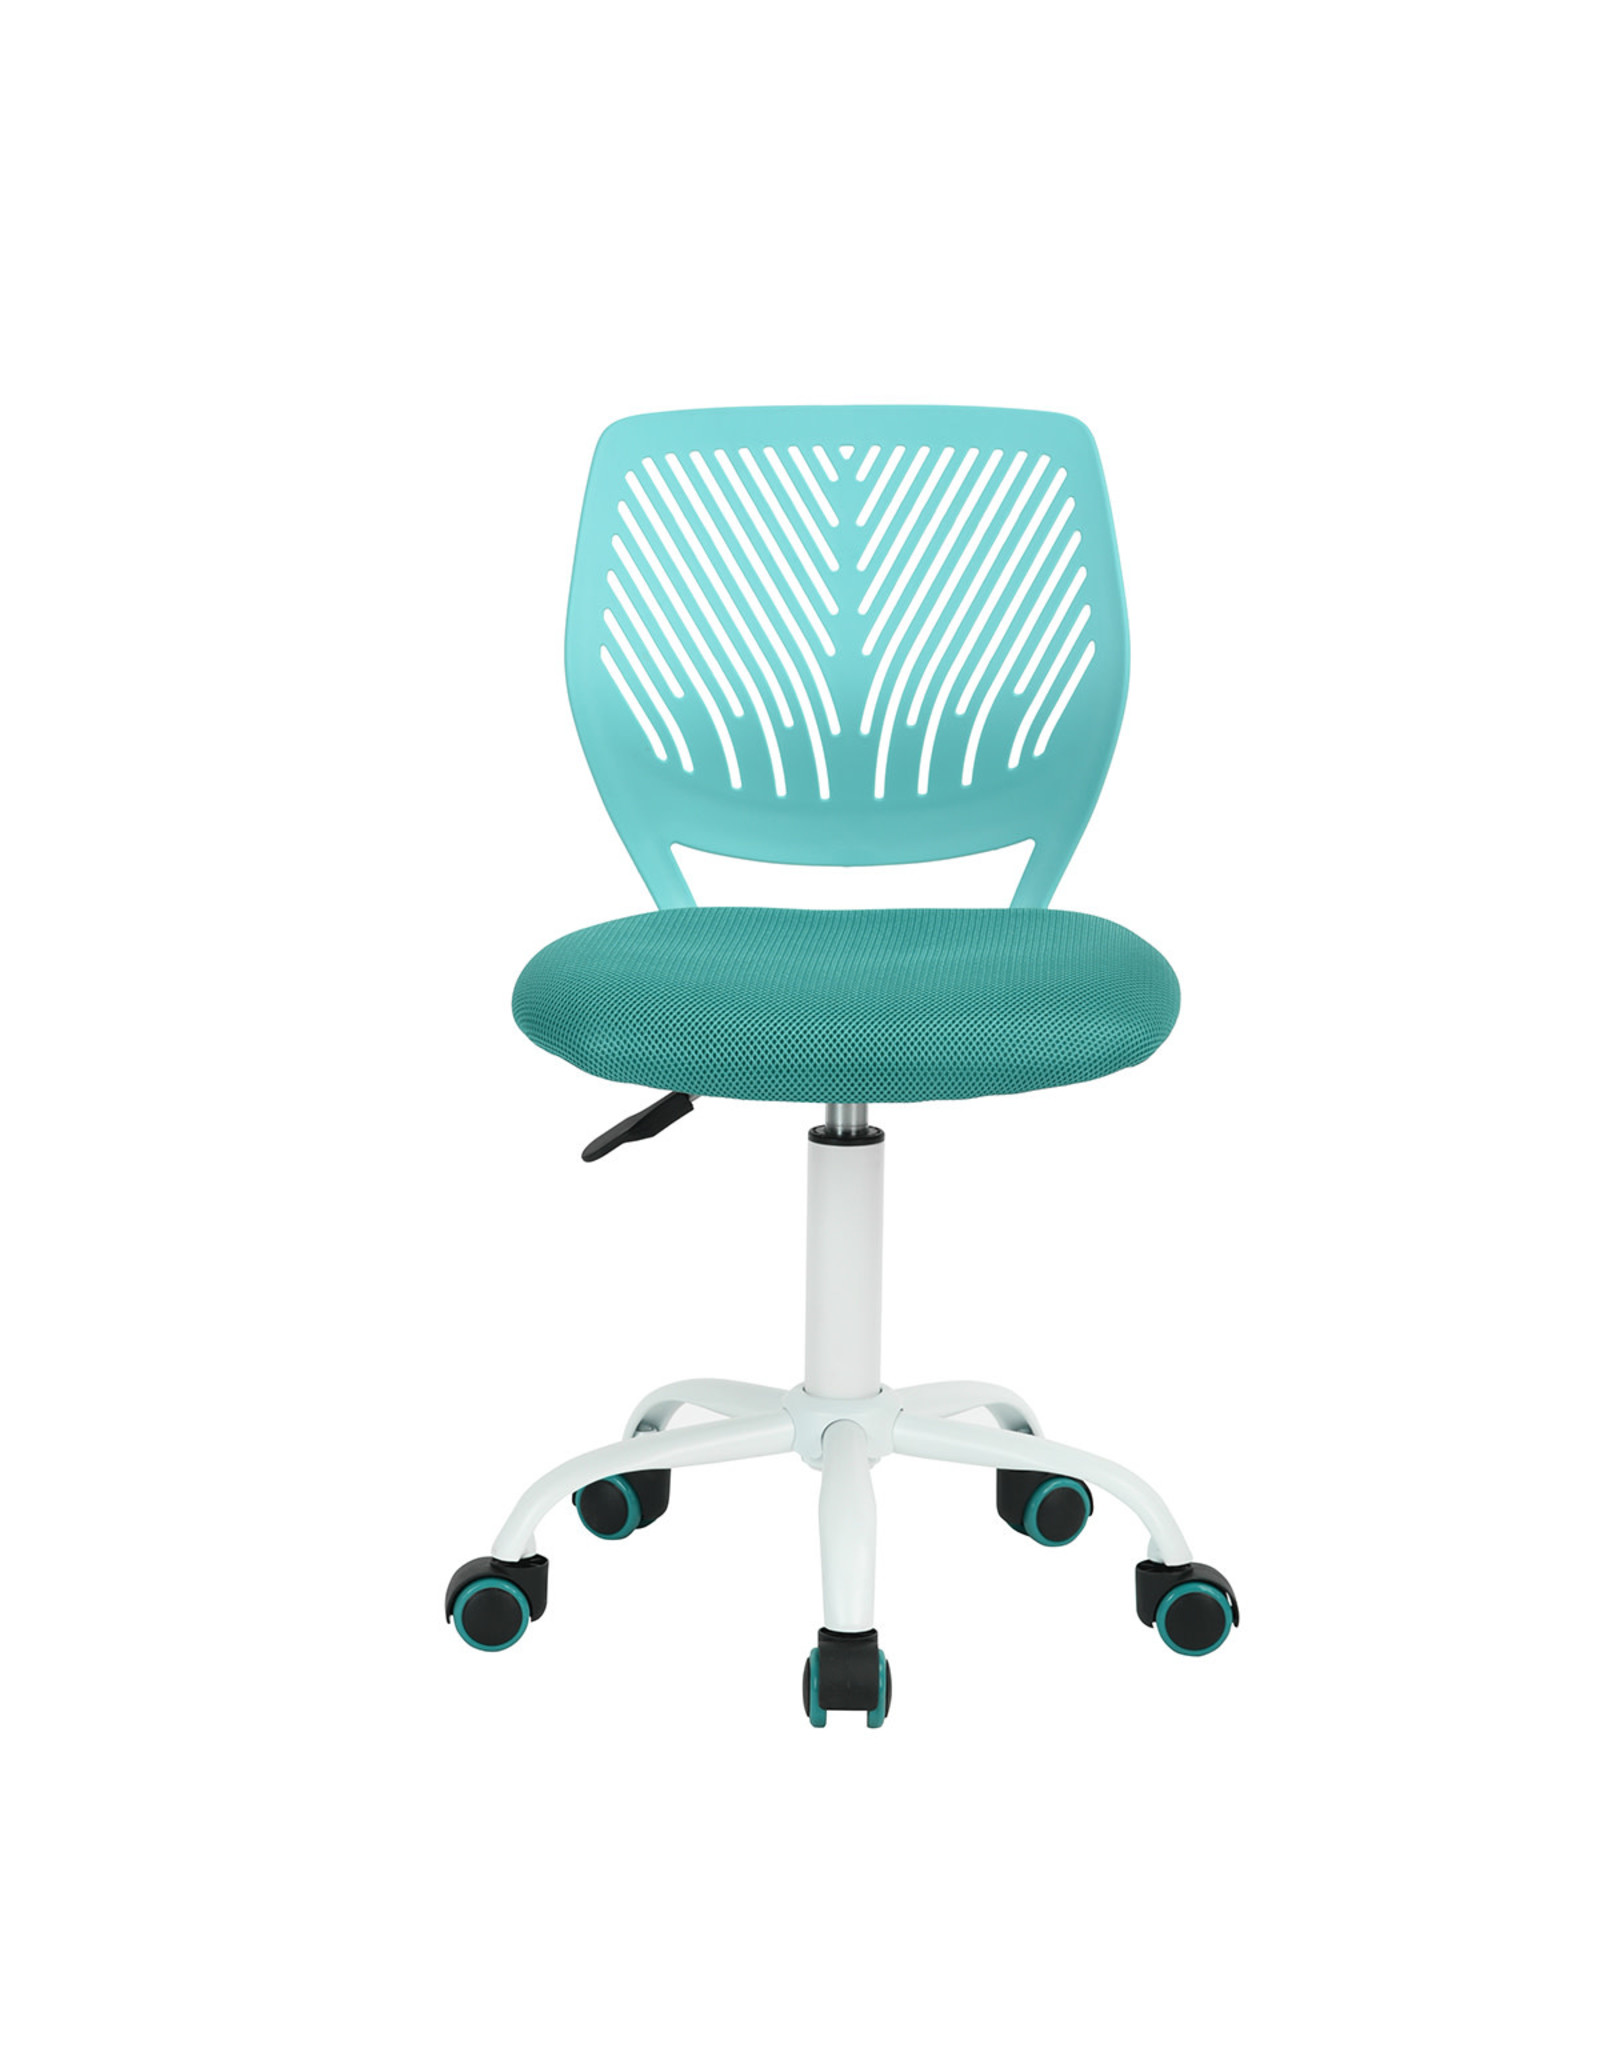 Chair - Task Chair - Height Adjustable - Turquoise